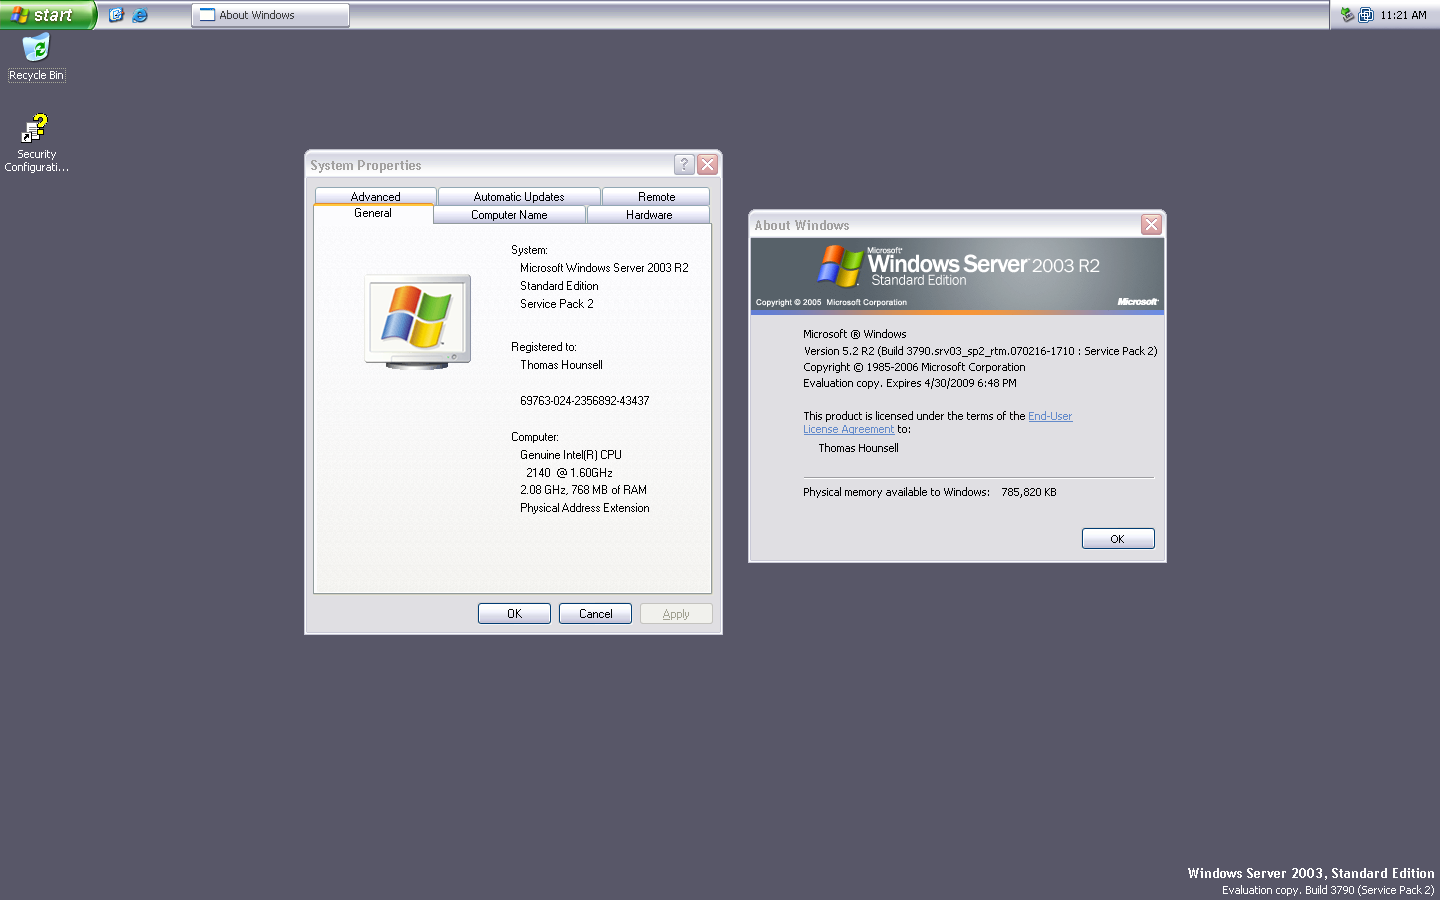 View topic problem with server longhorn 5384 betaarchive.